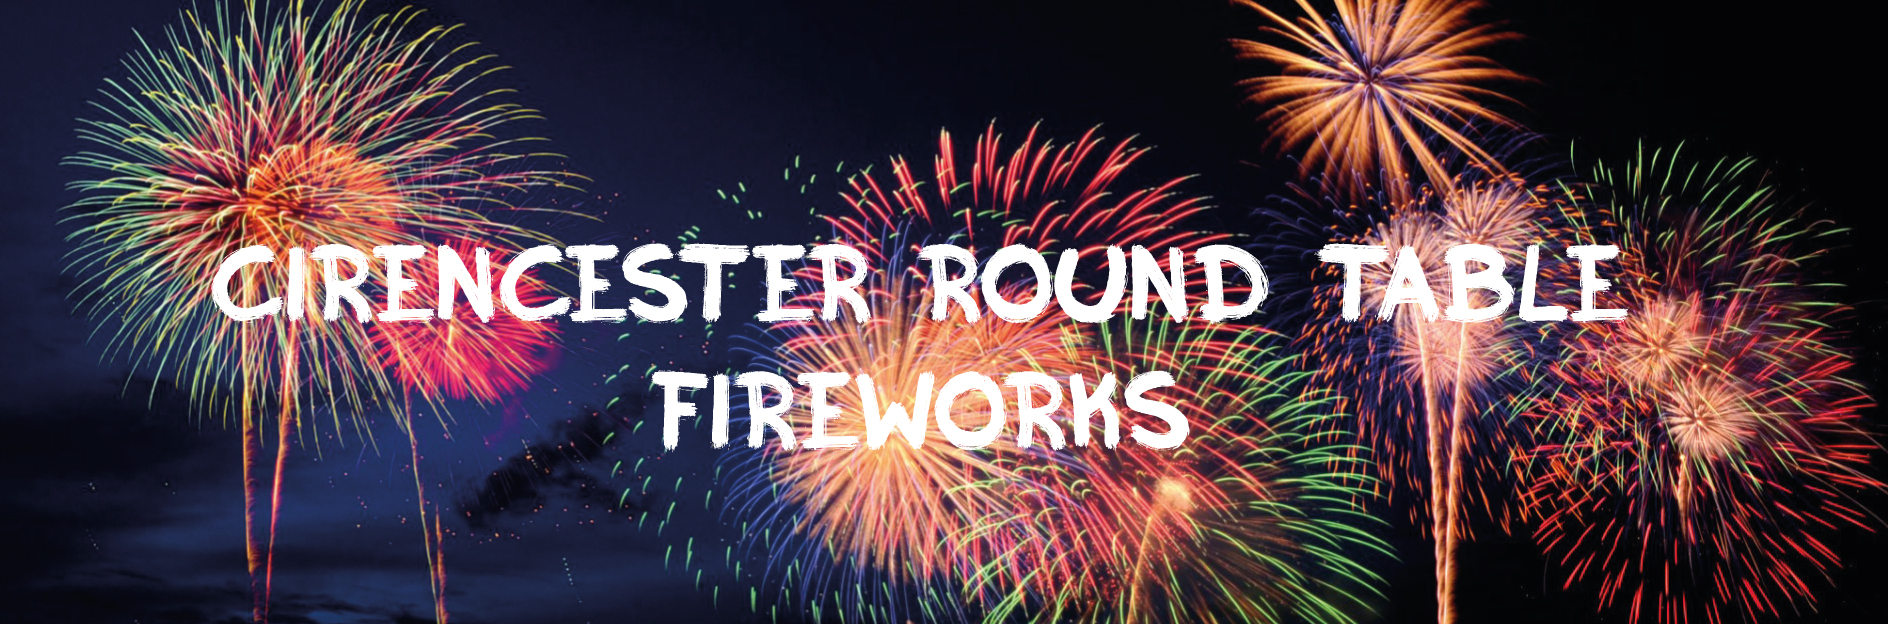 Cirencester Round Table Fireworks 2016